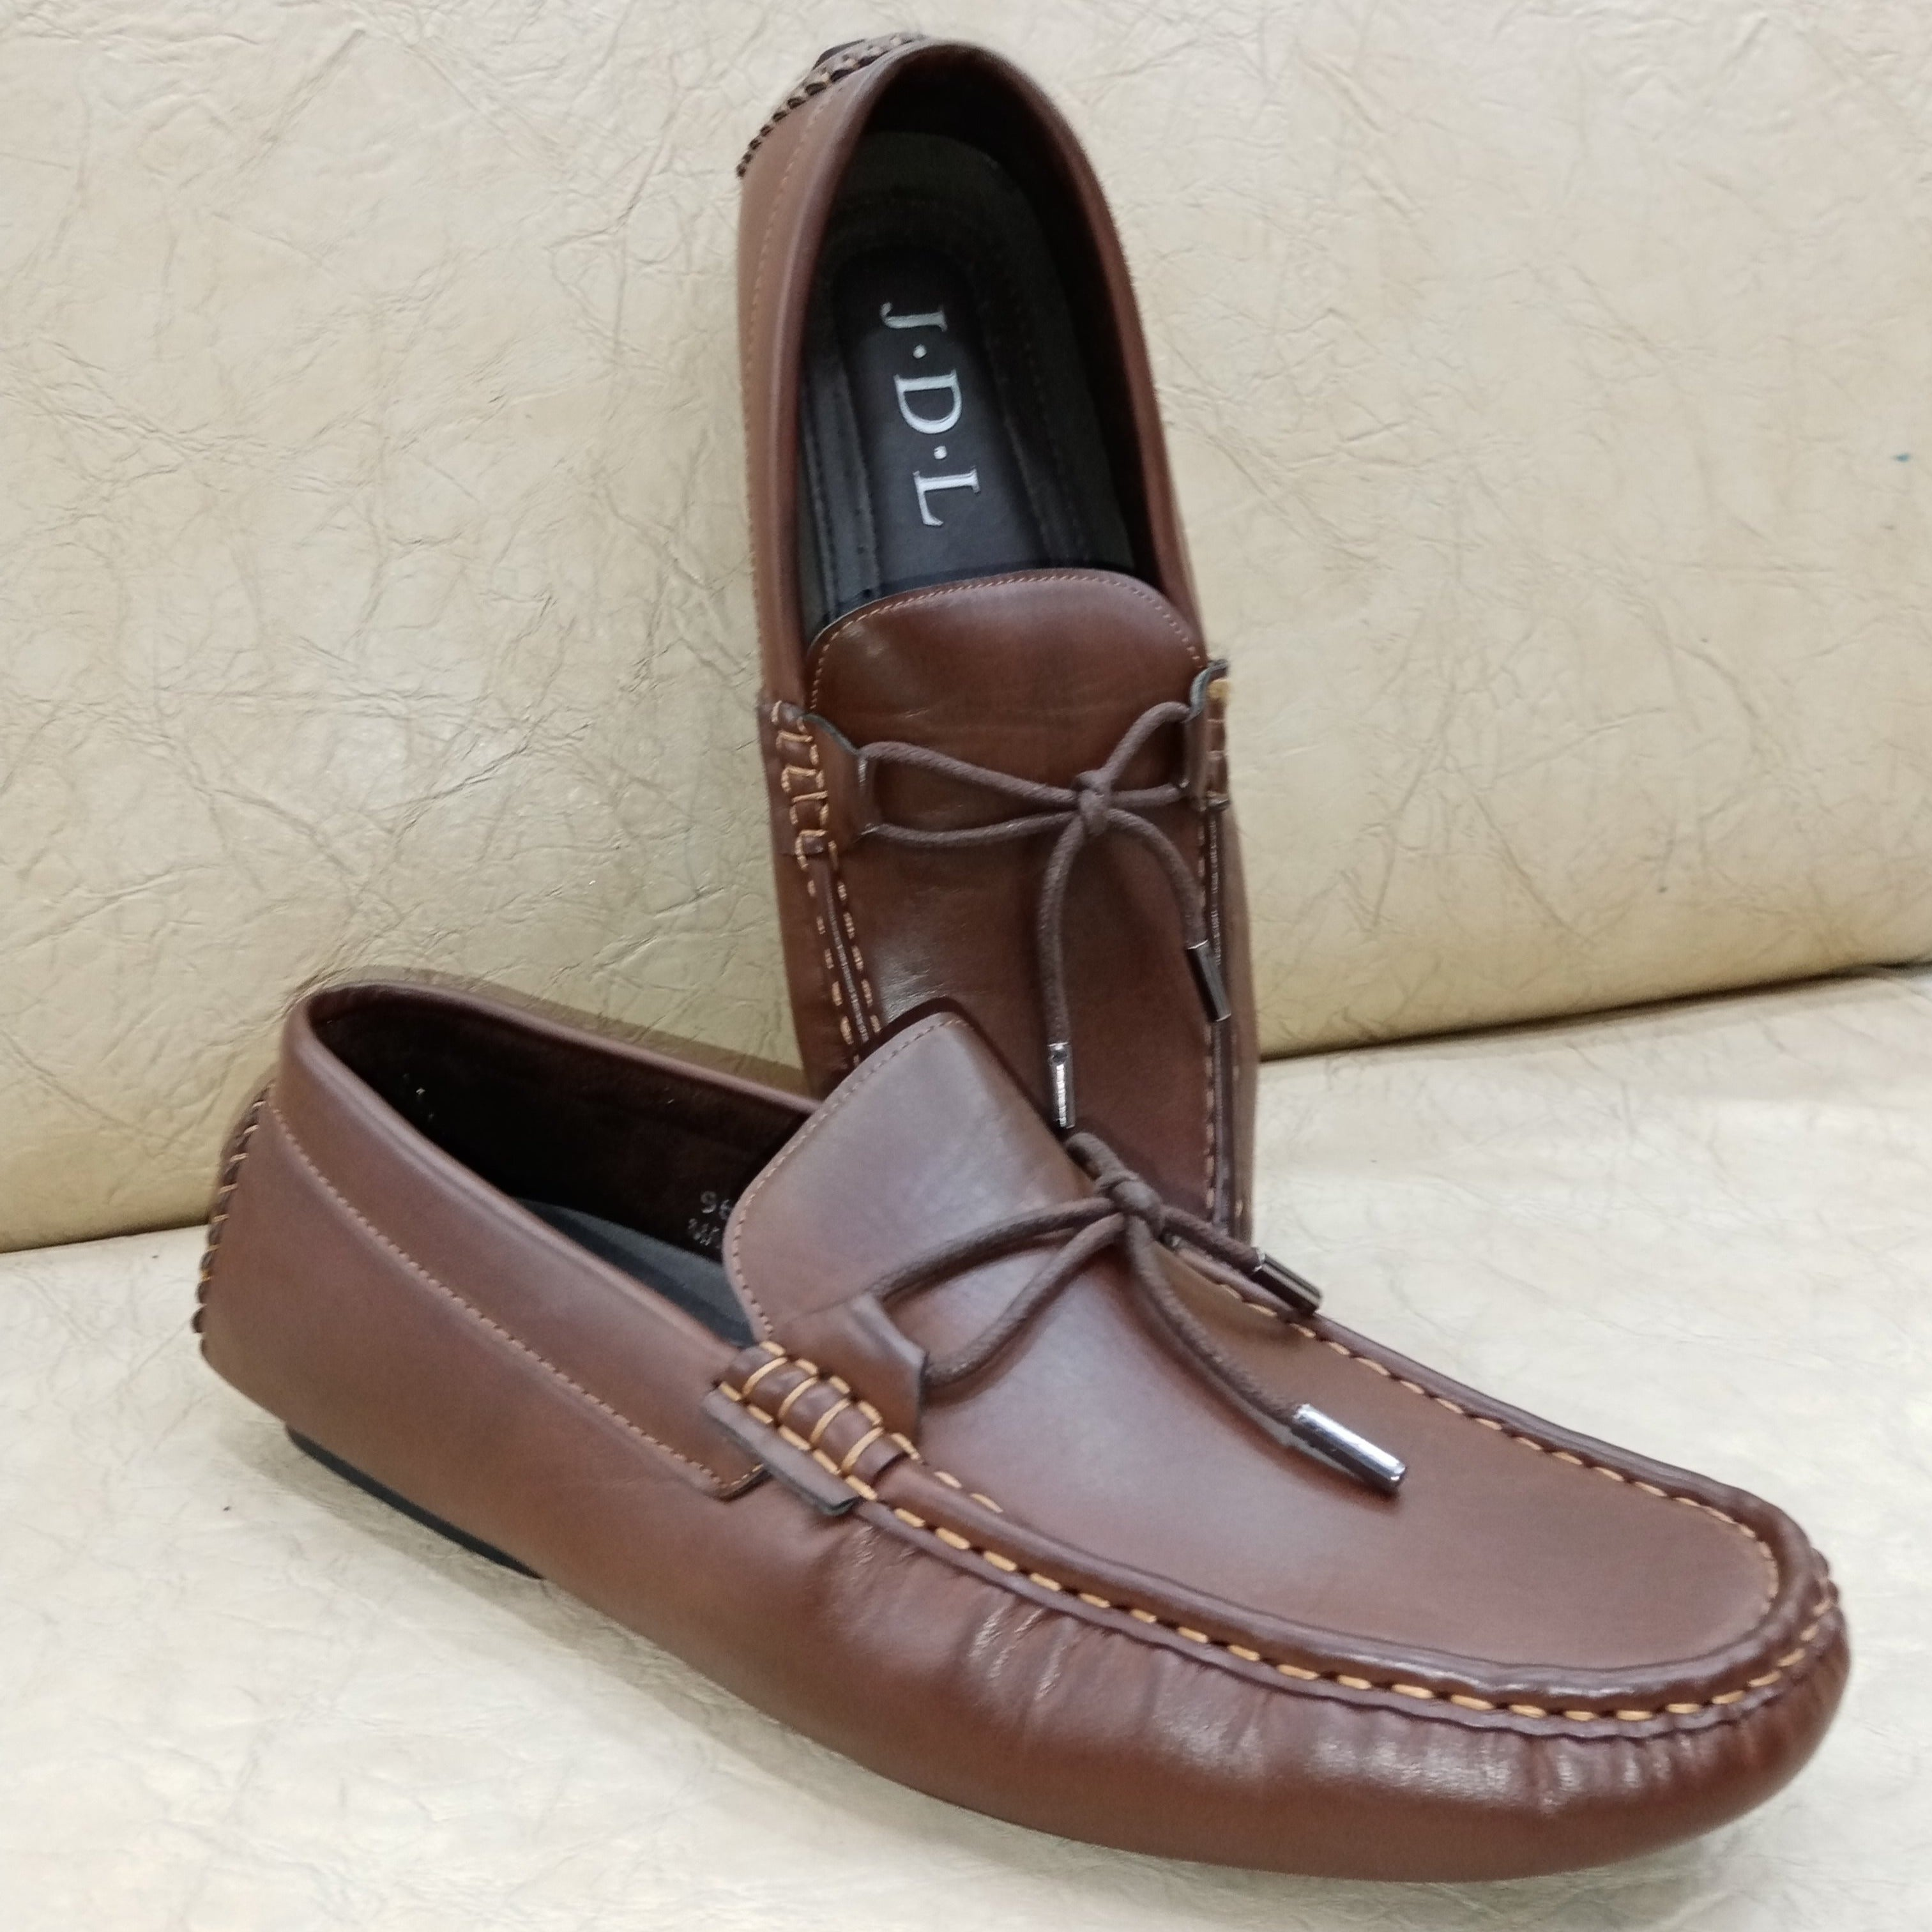 Emirates Leather Loafers